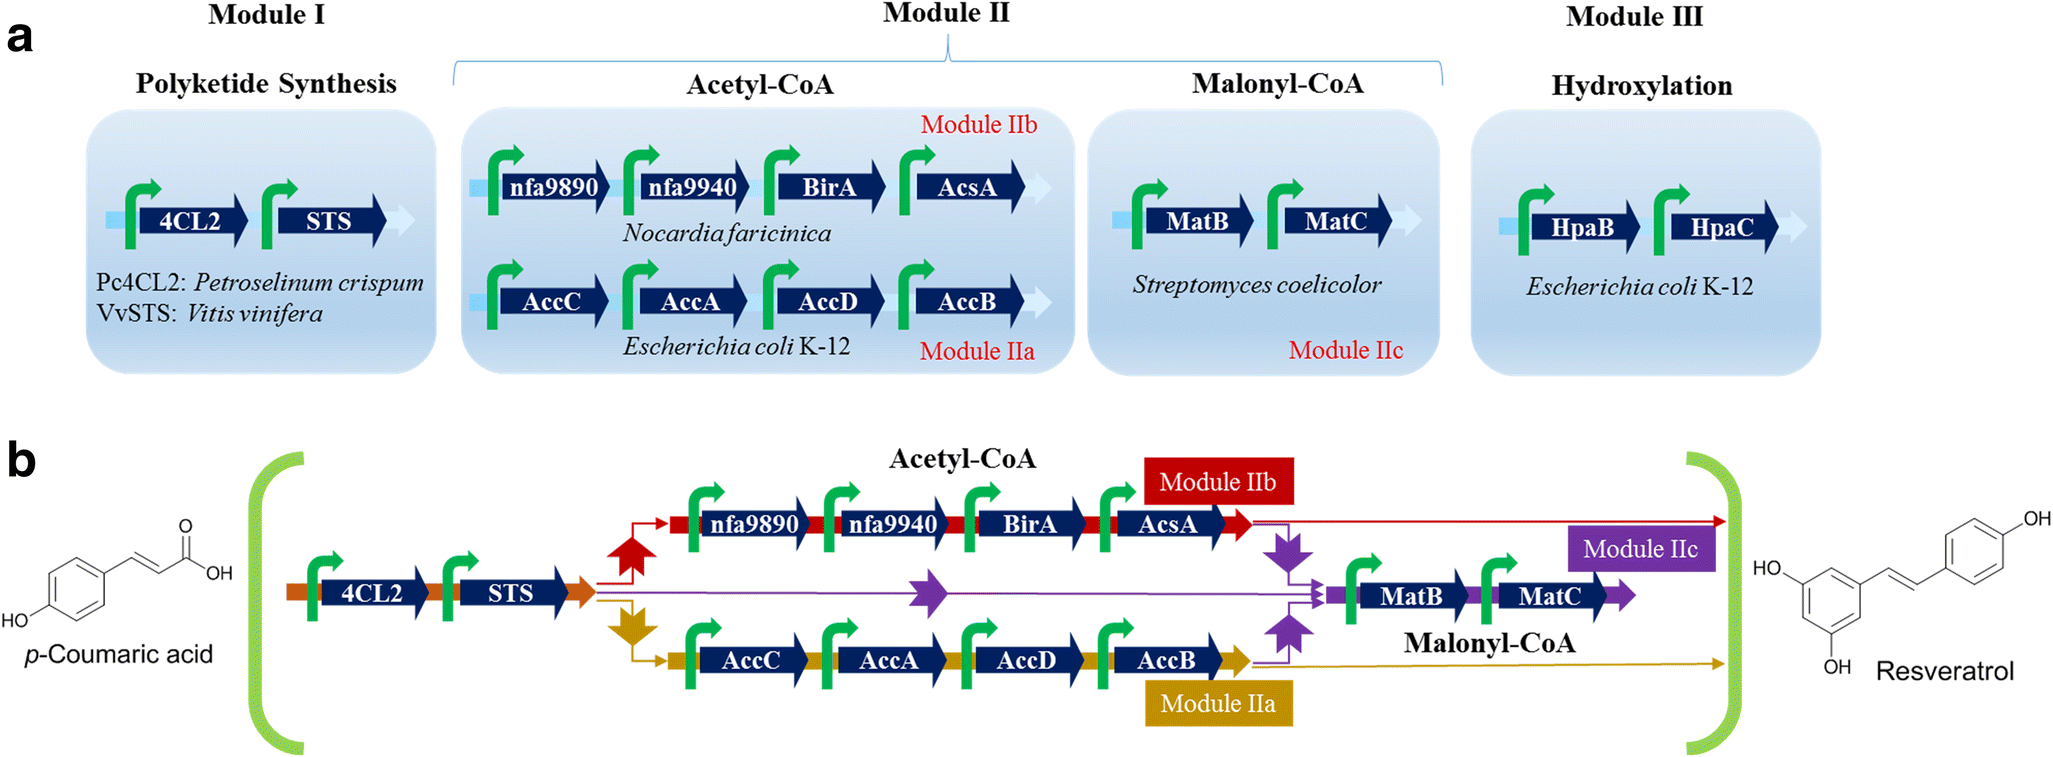 Modular pathway engineering for resveratrol and piceatannol